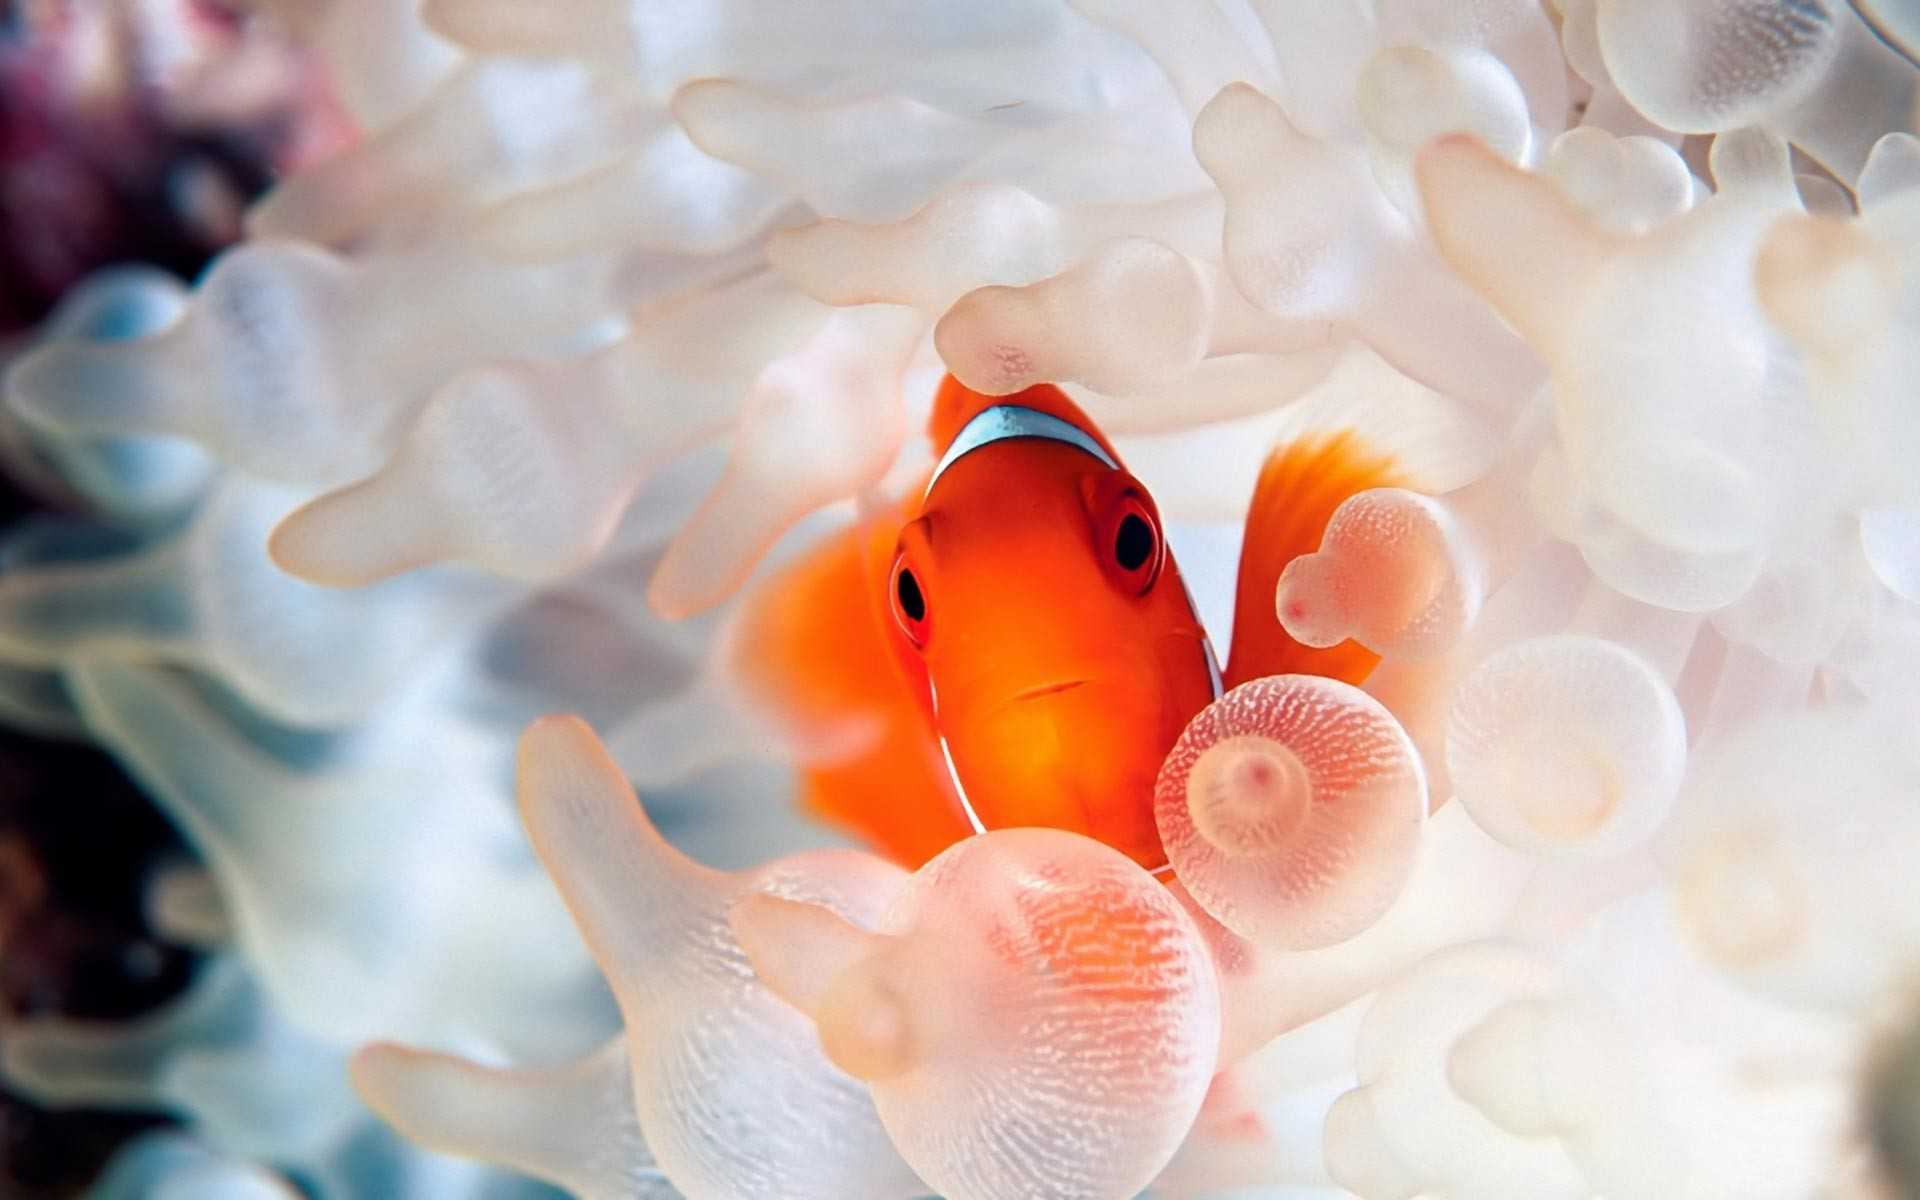 References – CORAL REEFS · Fish on Pinterest